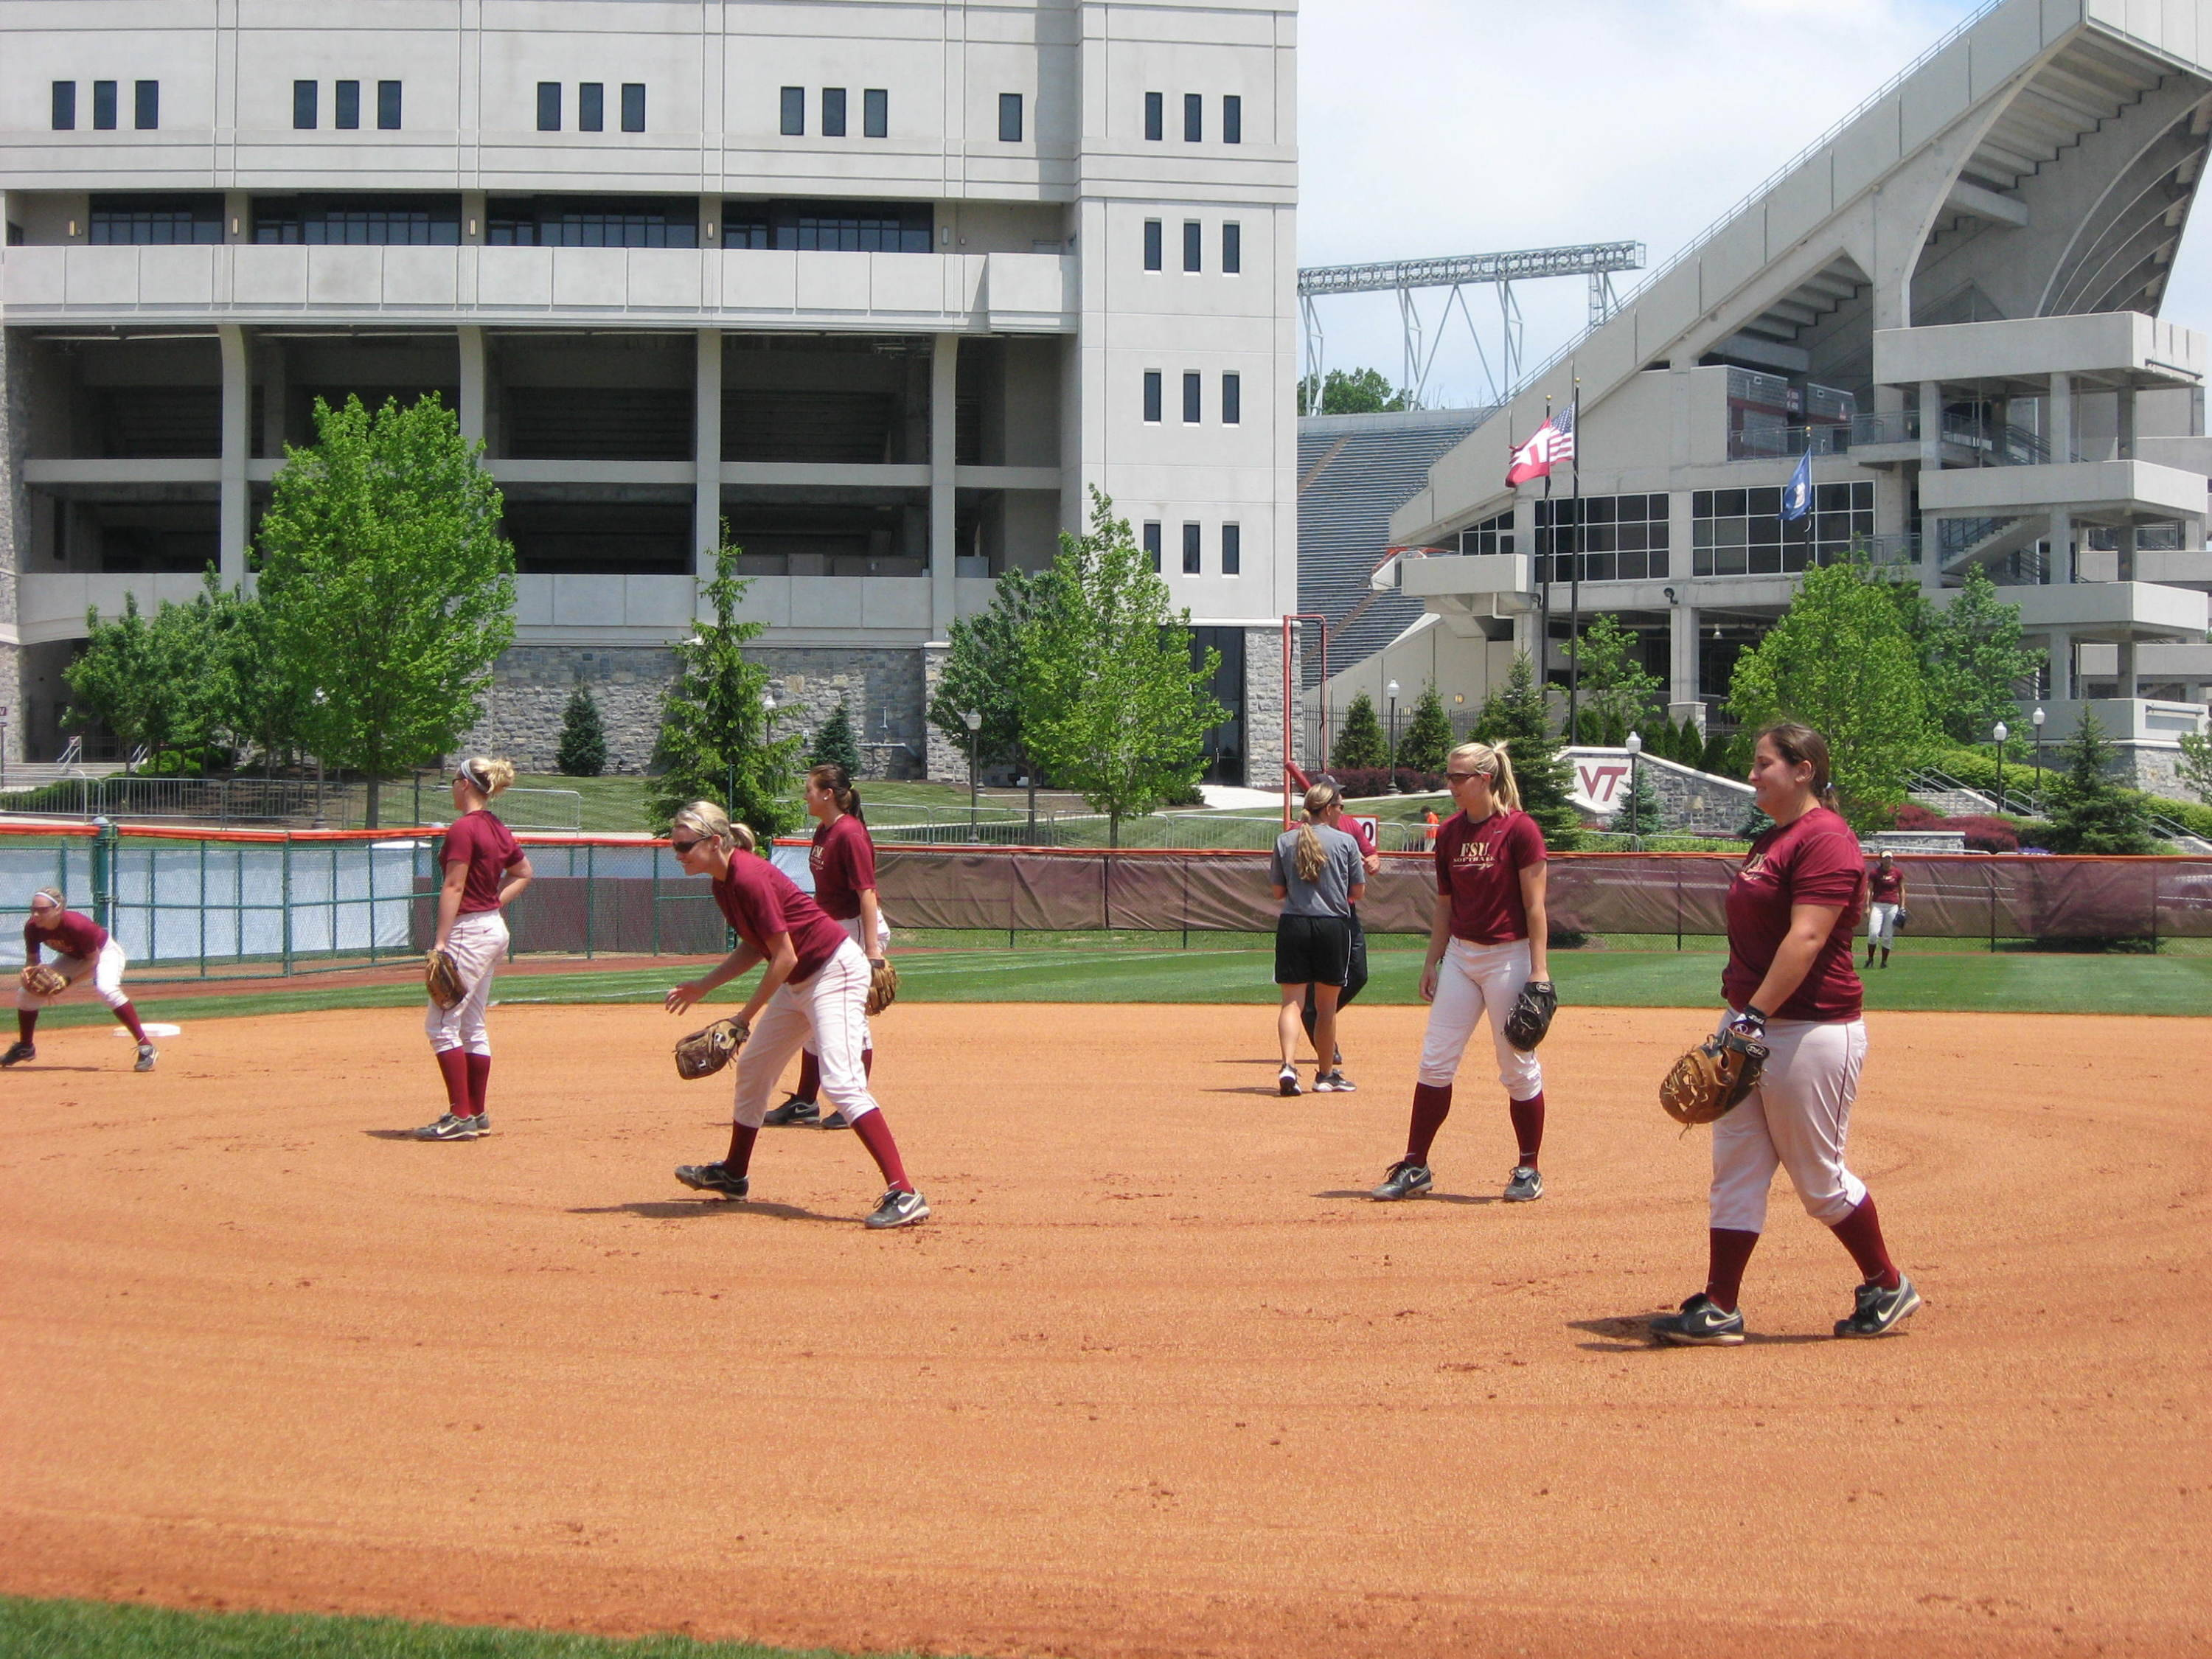 Sarah Hamilton, Tory Haddad and others practice on Thursday afternoon at Tech Softball Park.